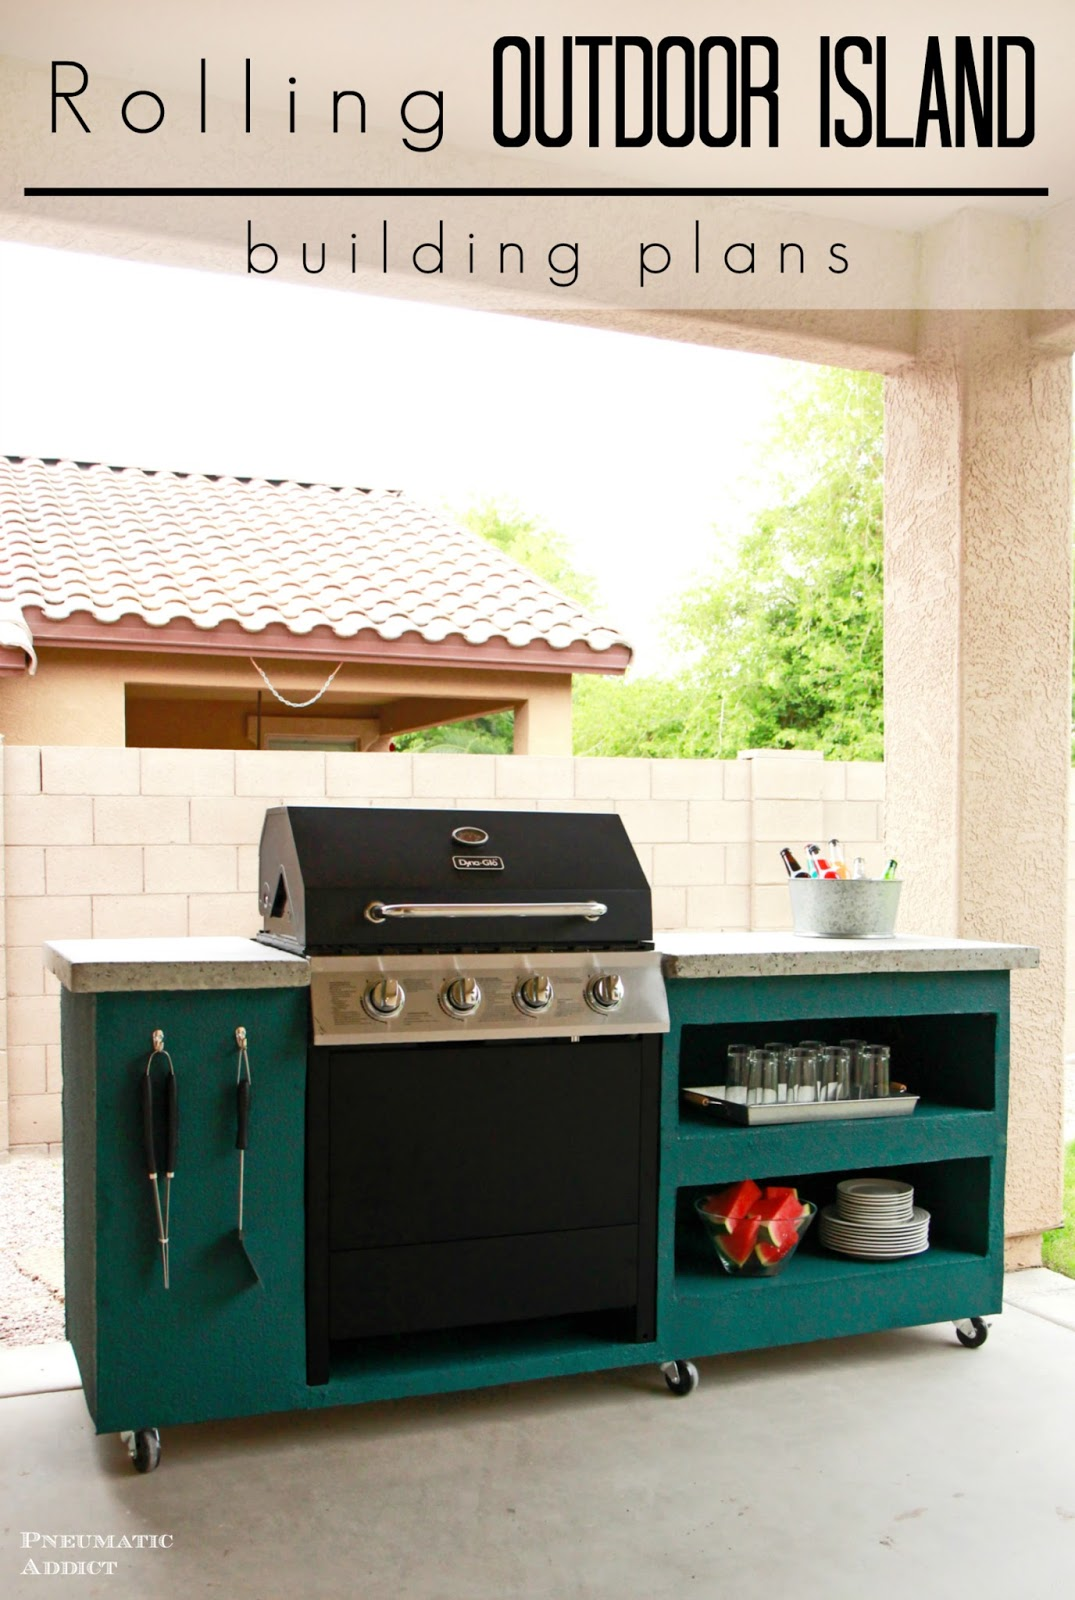 7 Best DIY Grill Station Ideas and Projects for 2020 on Patio Grill Station id=91310